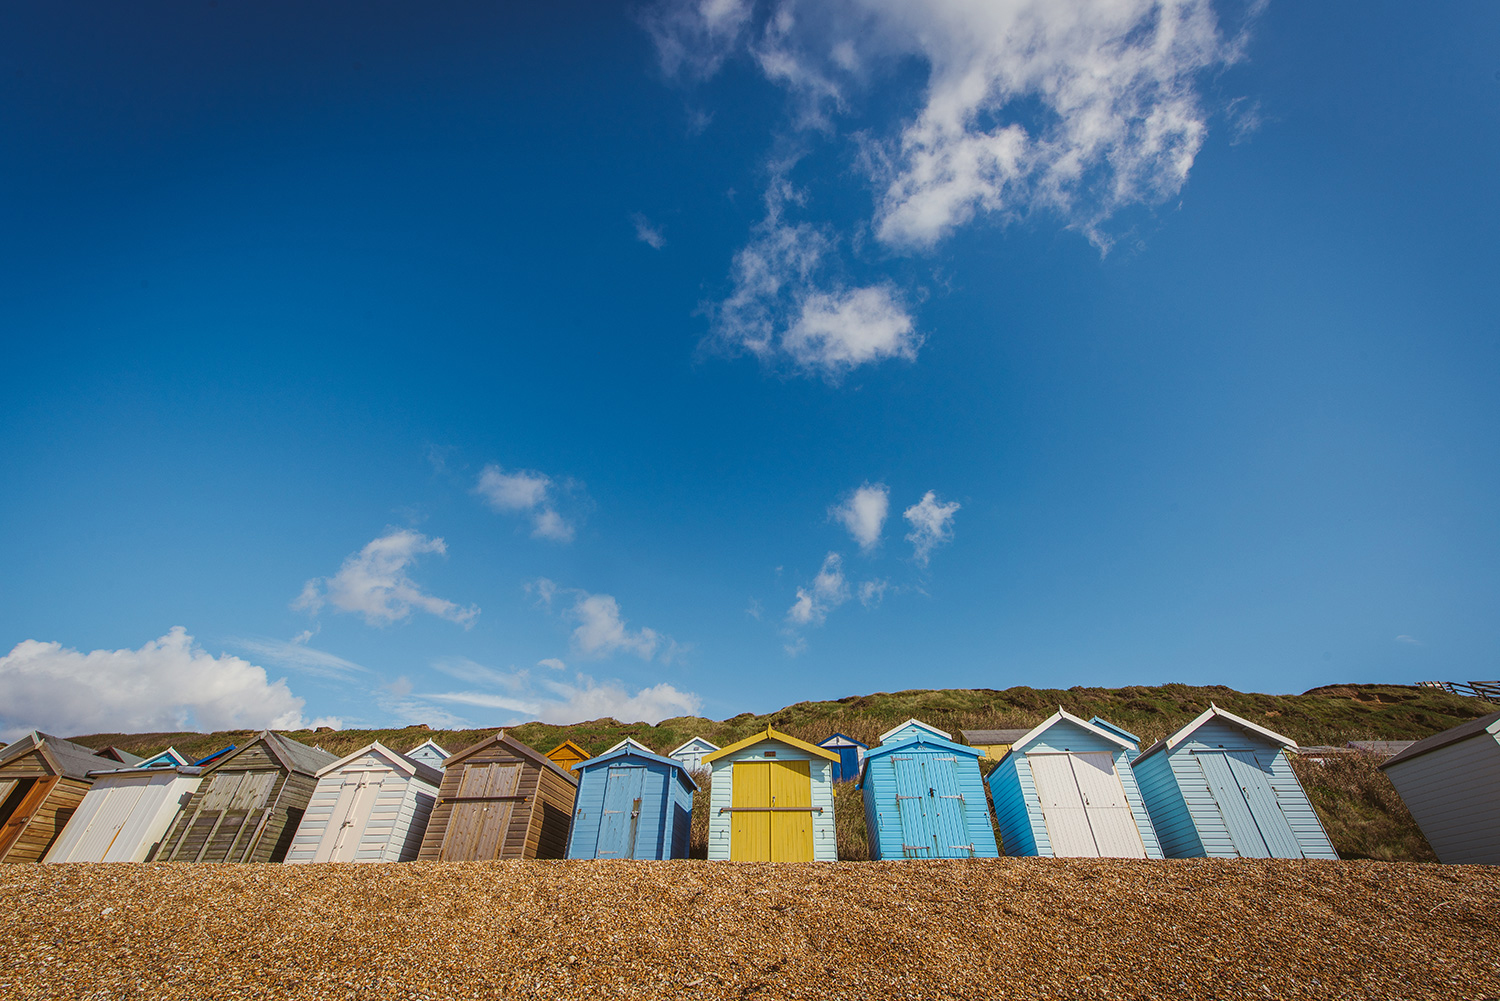 creative-commercial-lifestyle-photography-christchurch-bournemouth-hampshire.jpg